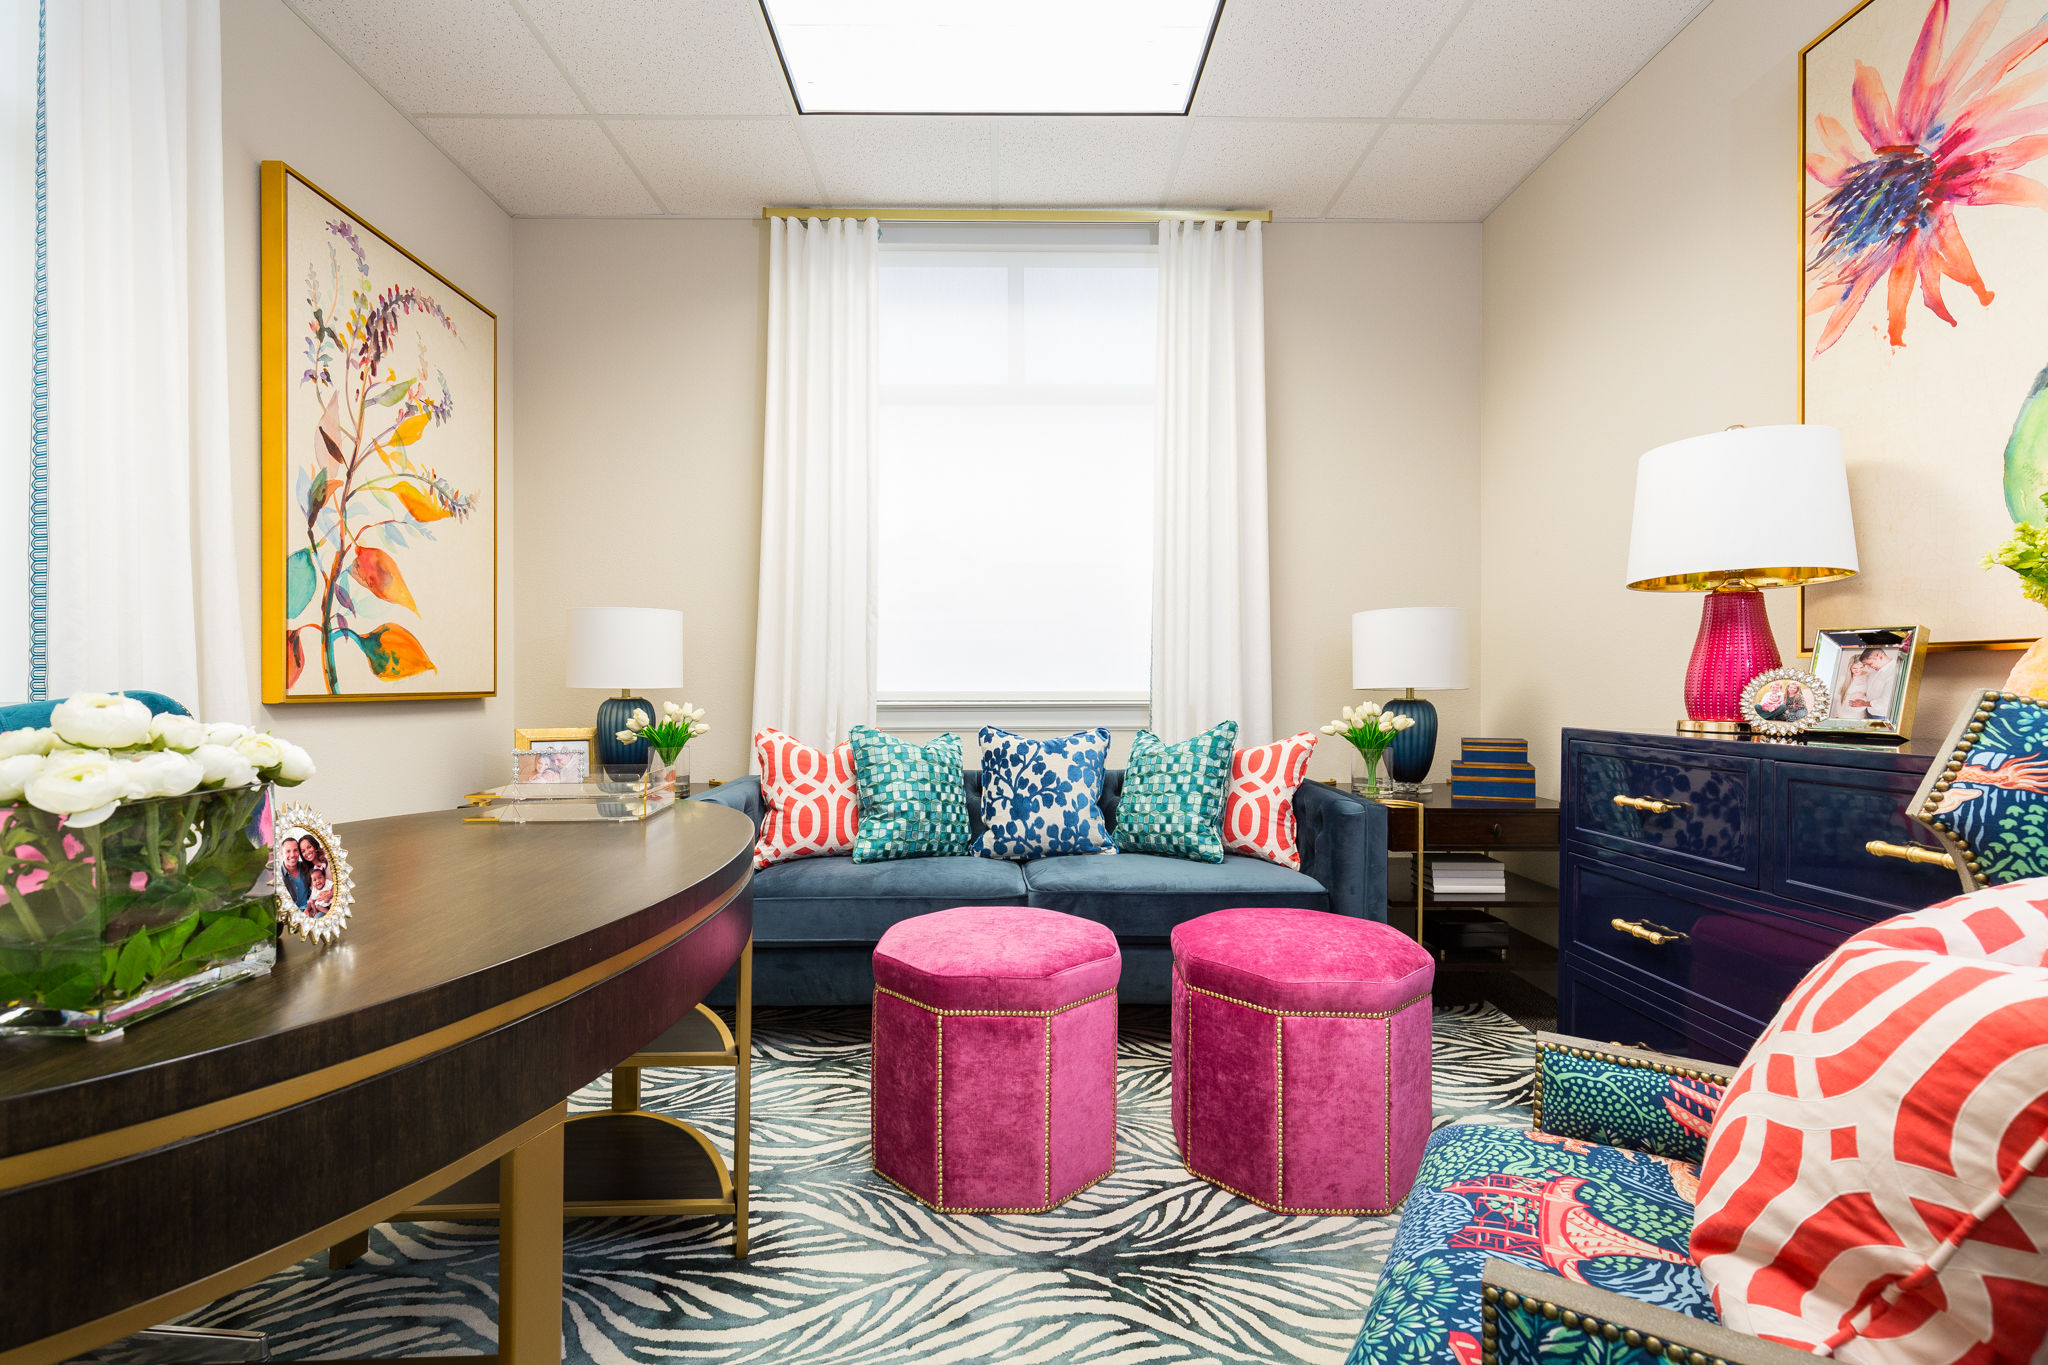 Up Your Entrepreneur Game With A Commercial Office Makeover